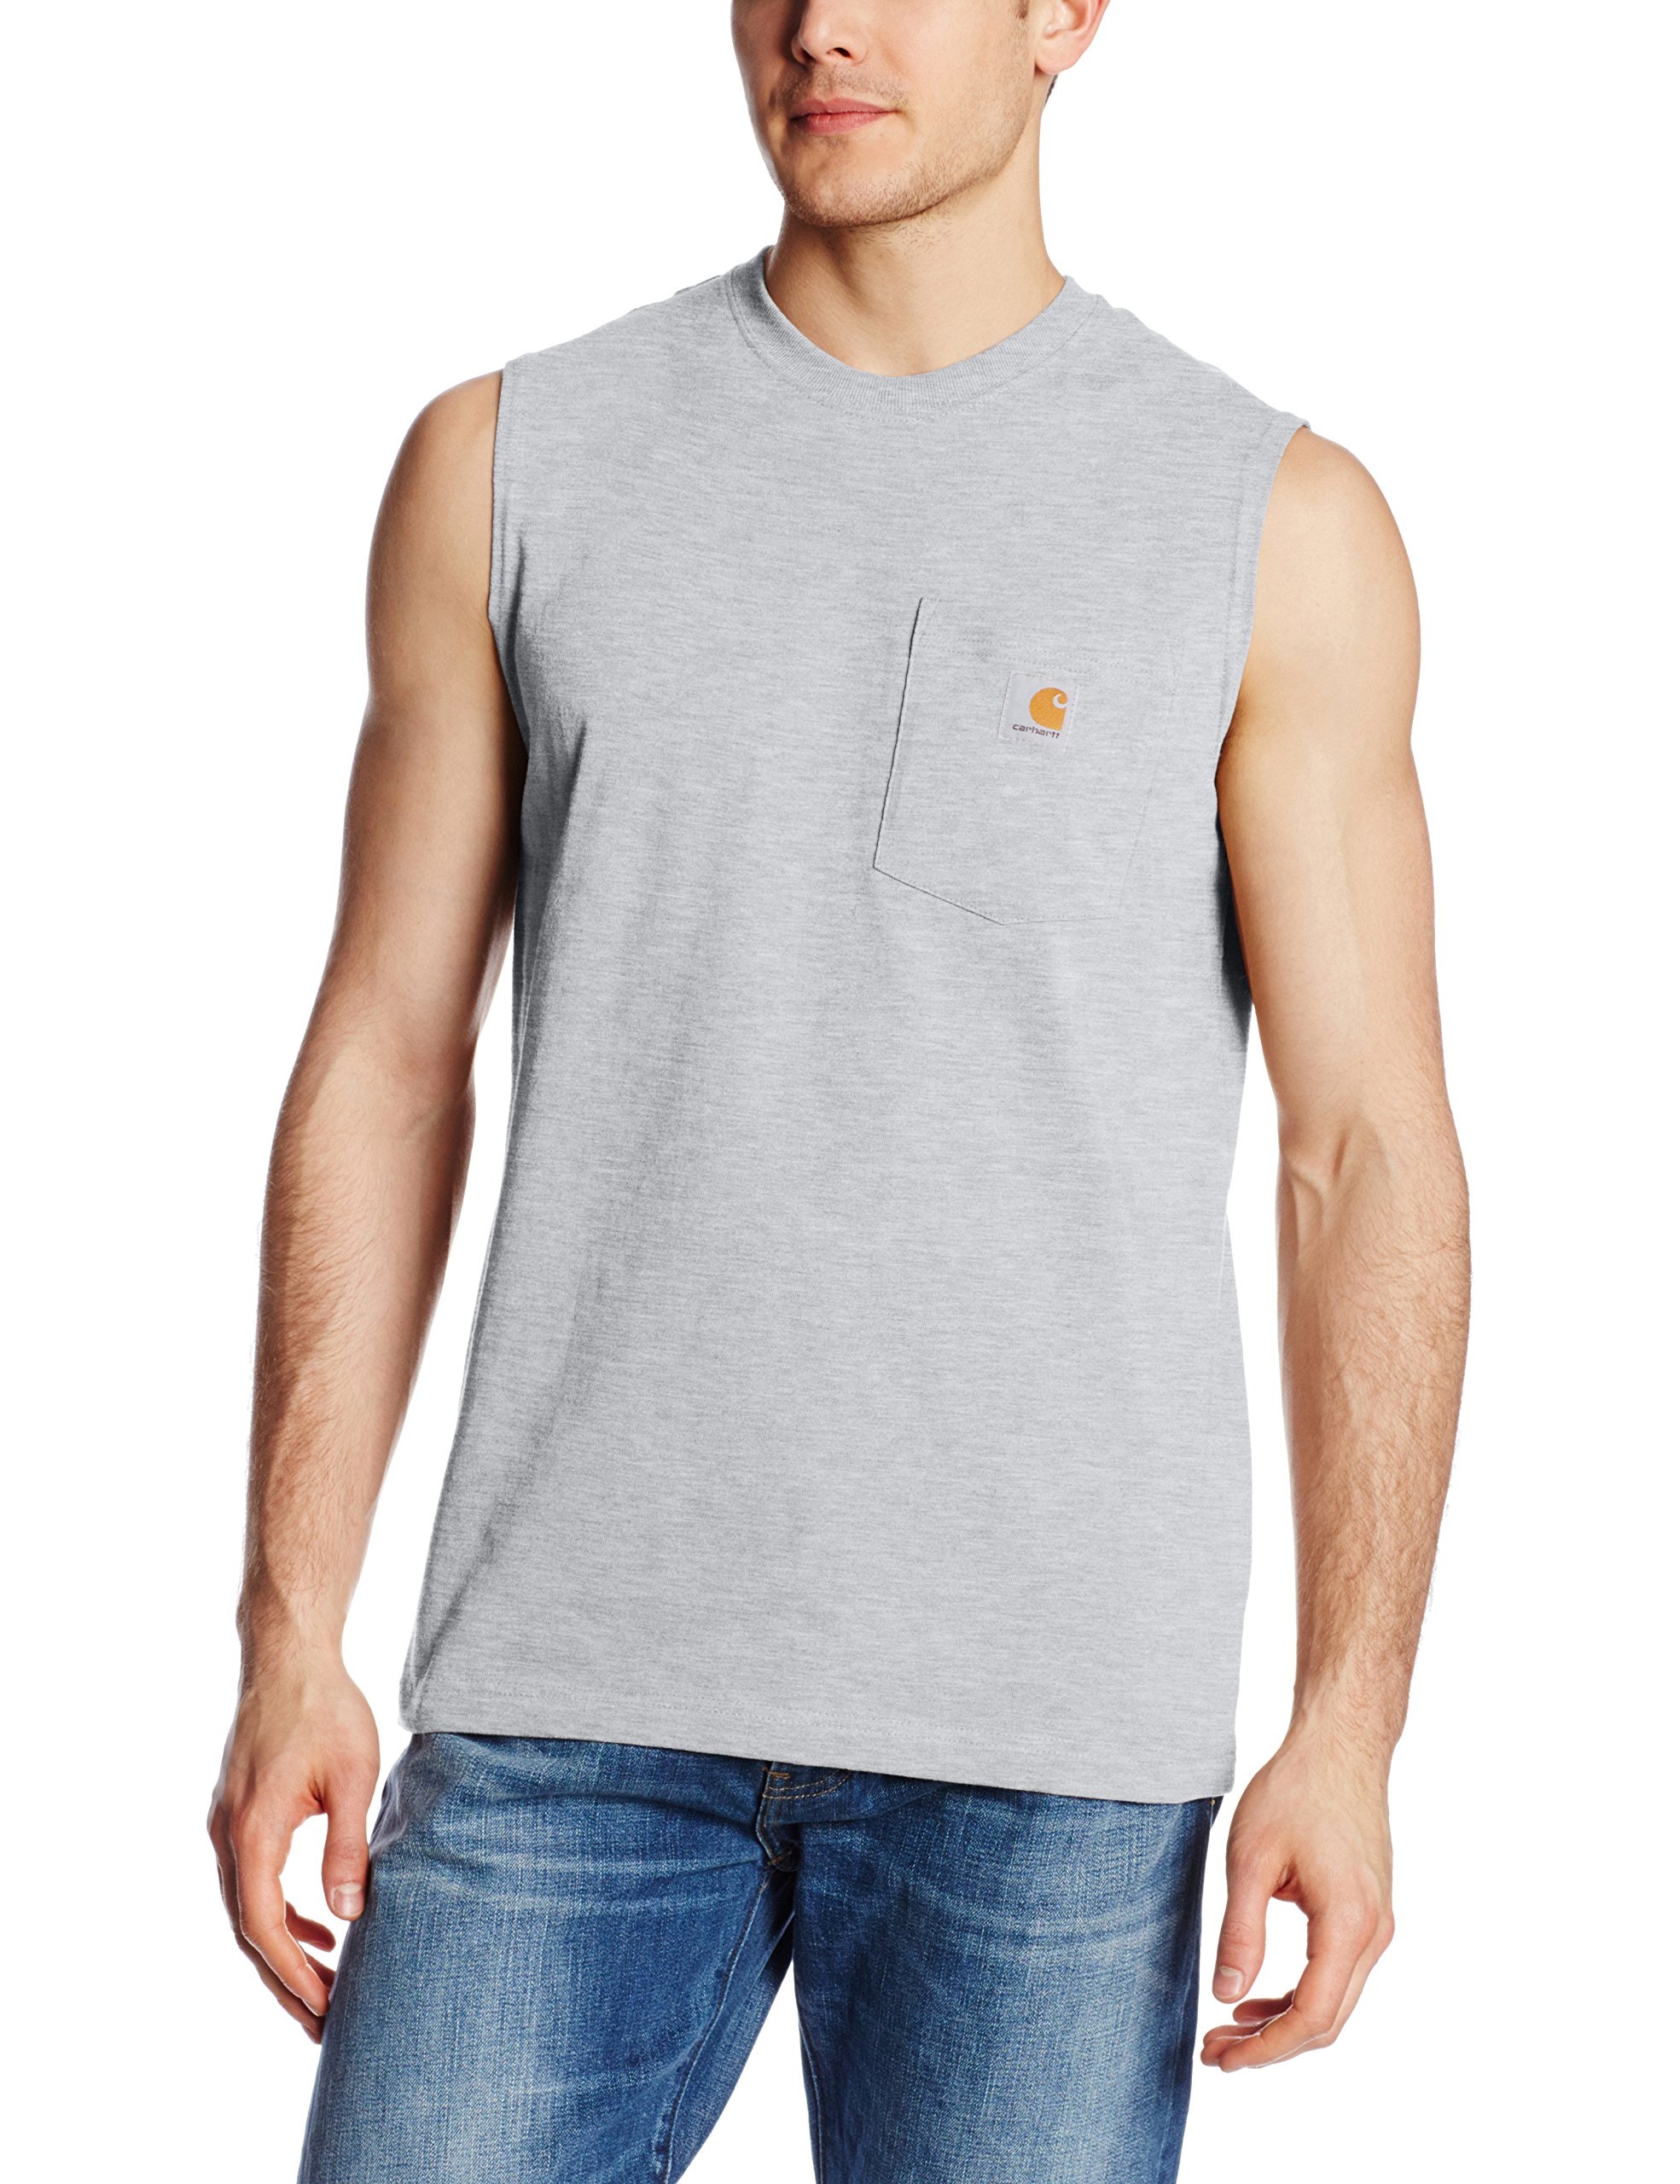 Carhartt Men's Workwear Pocket Sleeveless Midweight T-Shirt Relaxed Fit,Heather Gray,X-Large by Carhartt